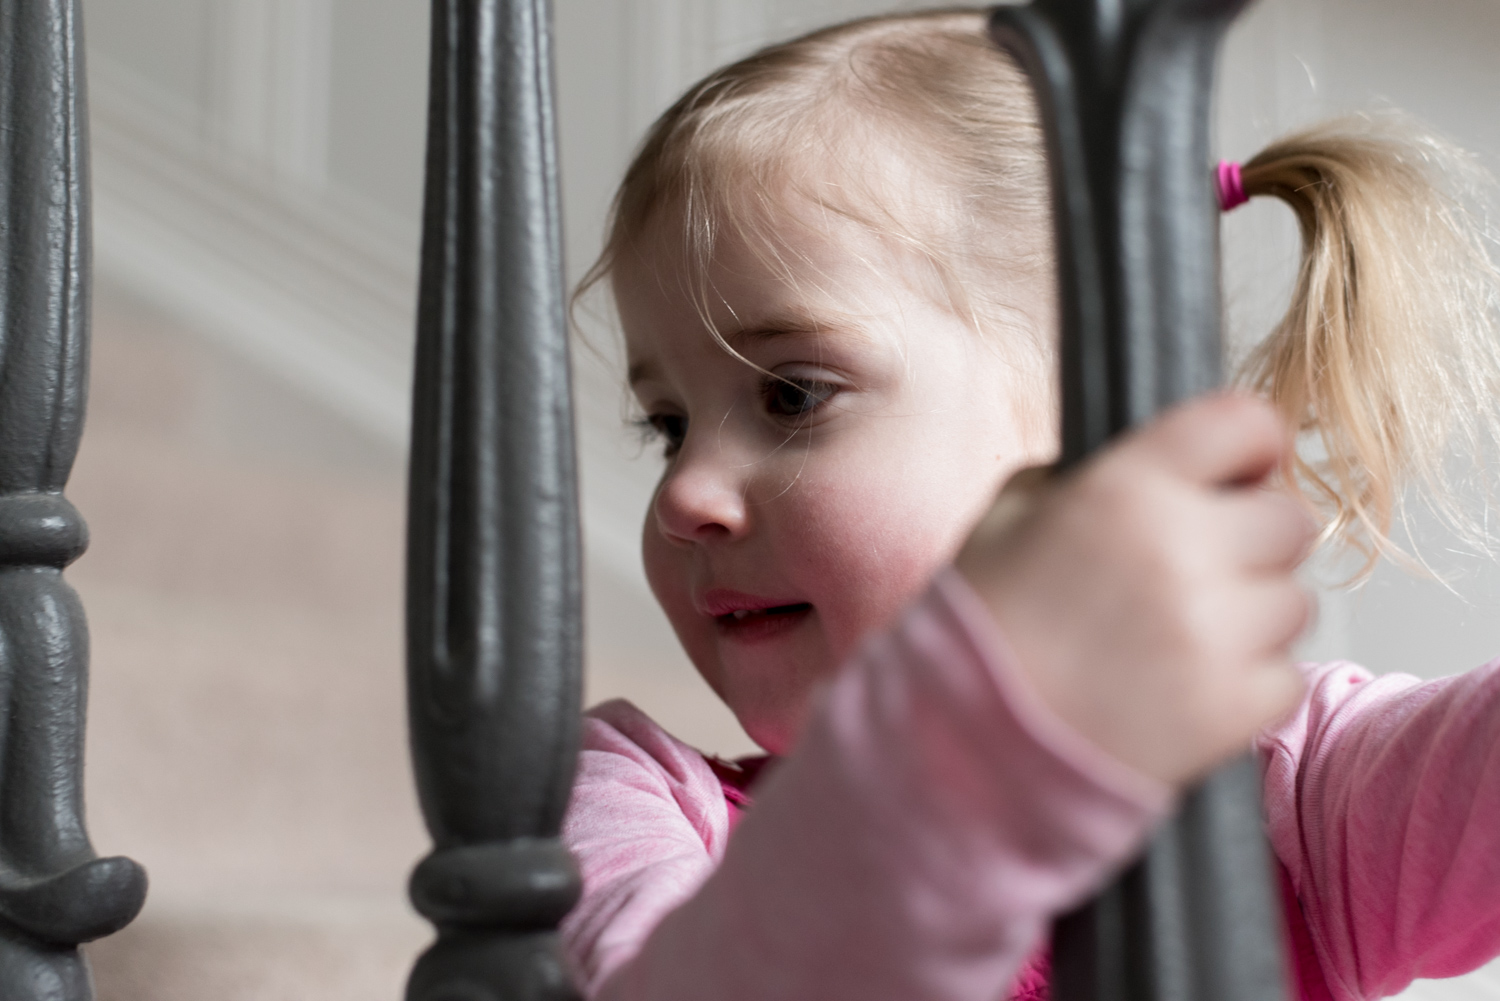 Family Photo Shoot In Dunfermline - girl explores the stairs_01